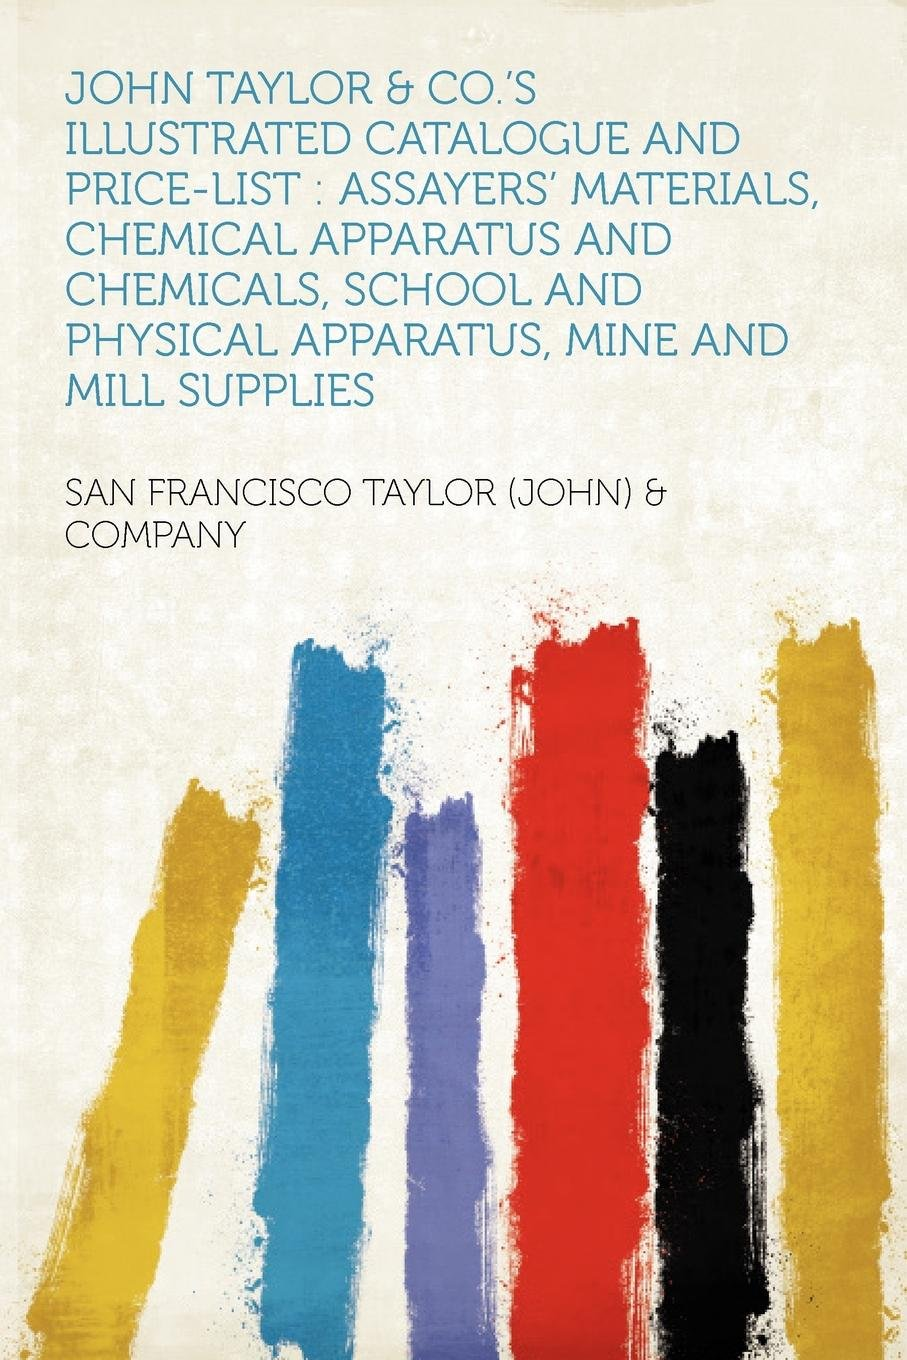 Read Online John Taylor & Co.'s Illustrated Catalogue and Price-list: Assayers' Materials, Chemical Apparatus and Chemicals, School and Physical Apparatus, Mine and Mill Supplies pdf